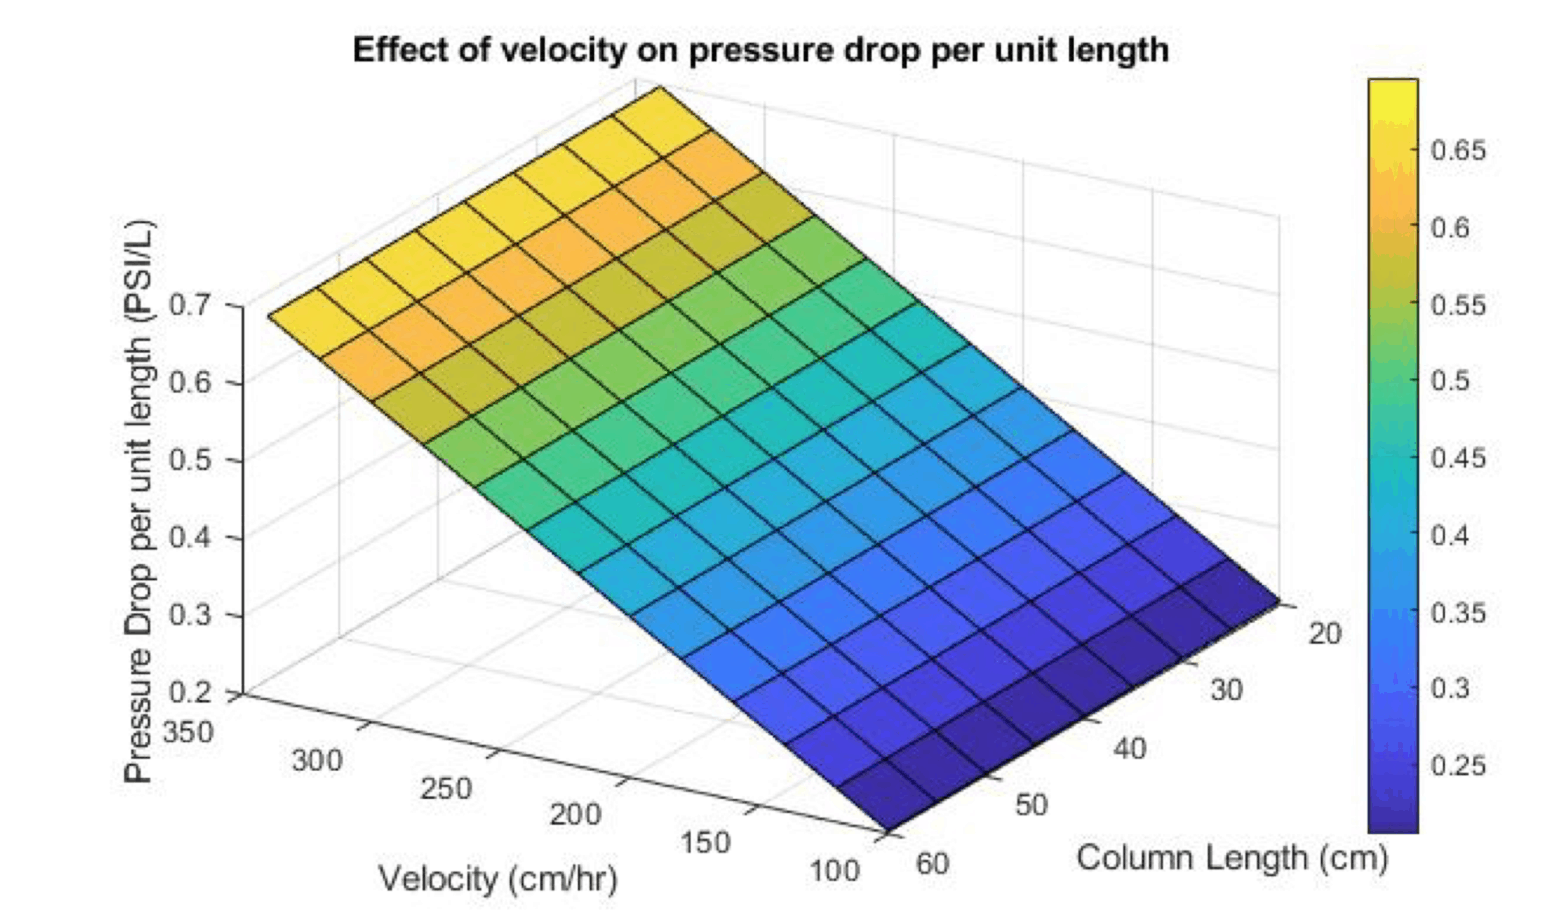 <strong>Figure 7.0 </strong> Effect of velocity and column length on pressure drop per unit column length.